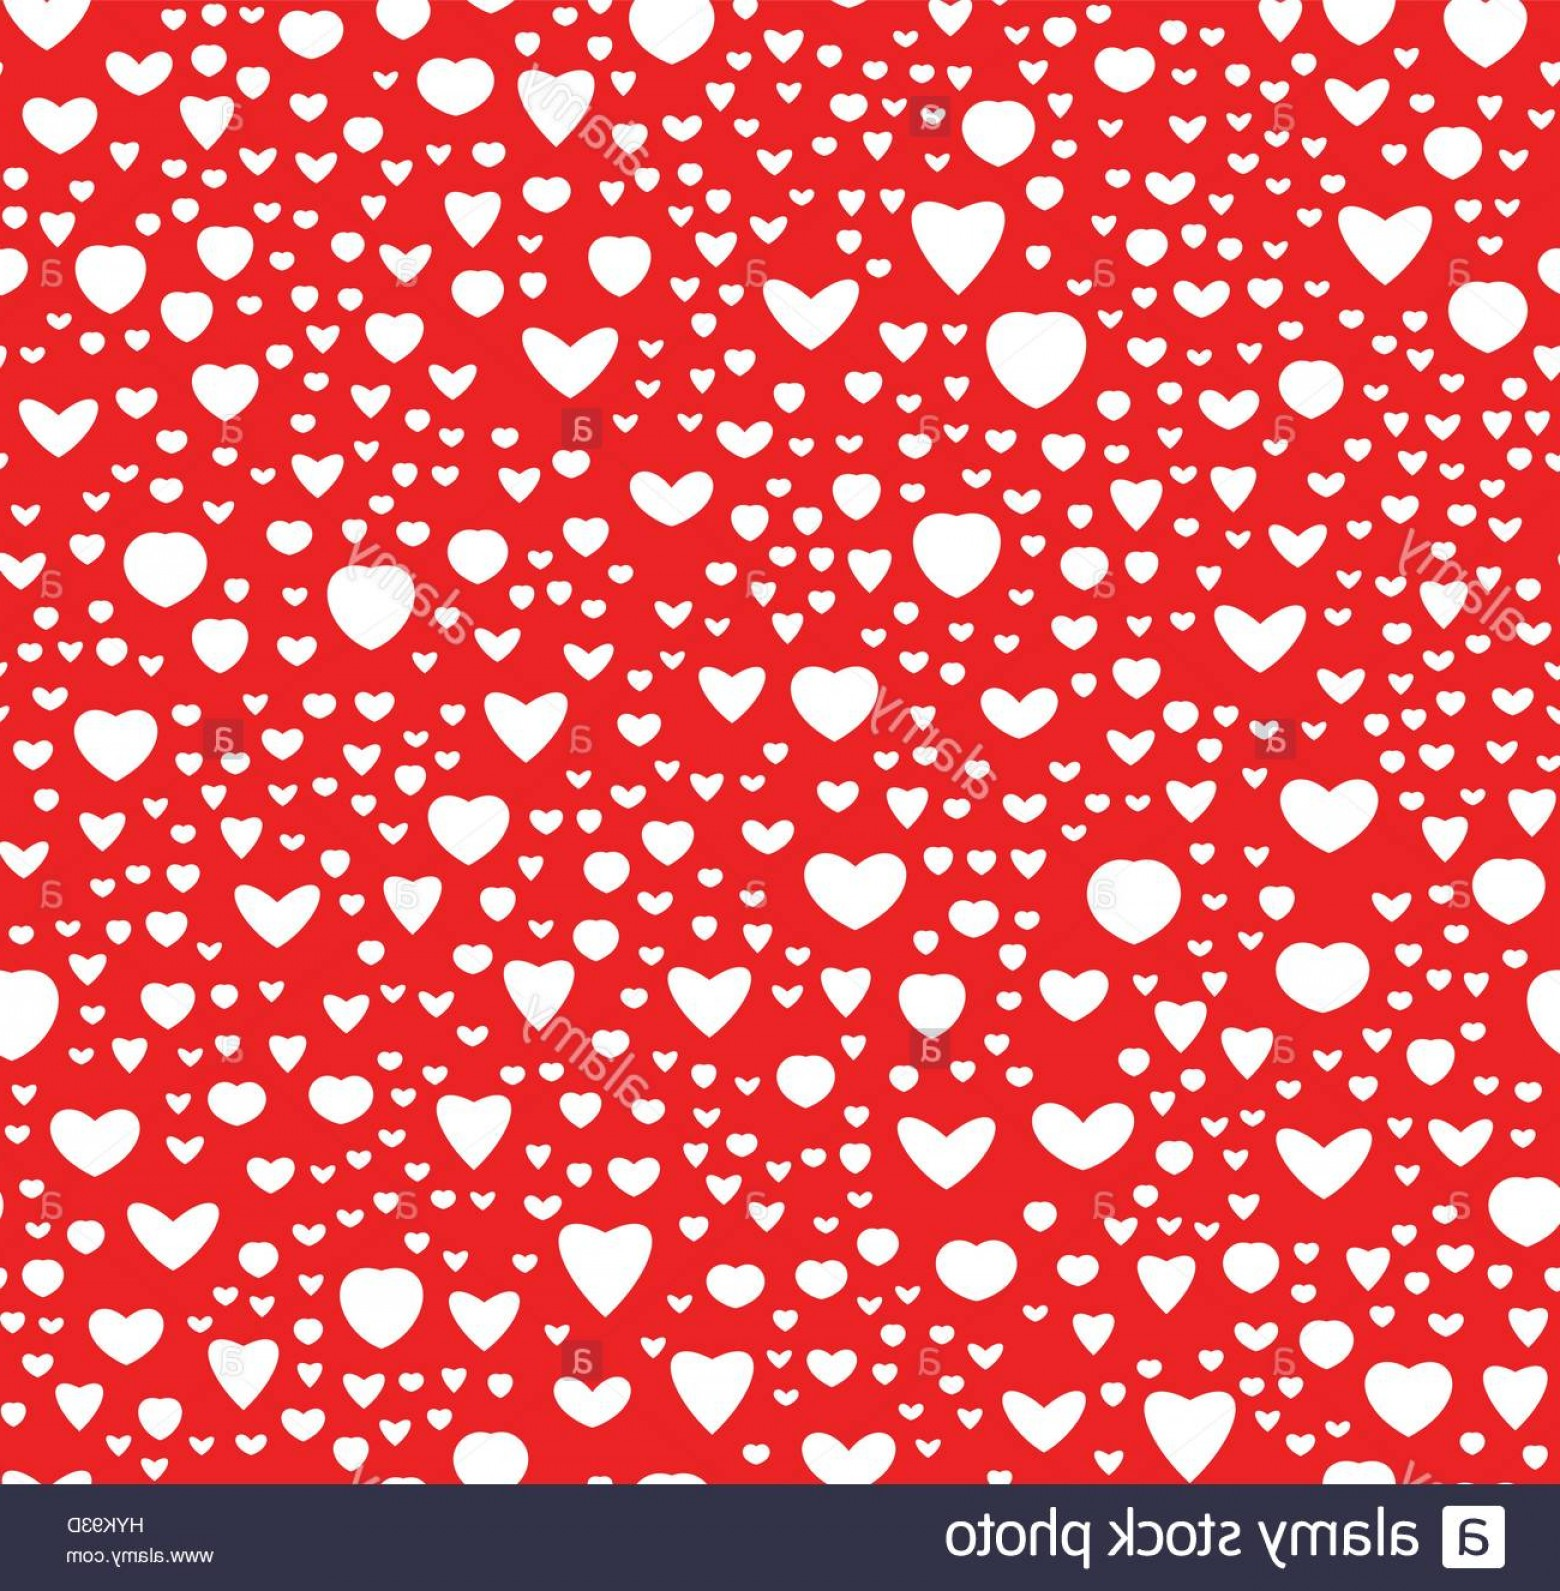 Cool Vector Hearts Pattern Symbol Pattern: Stock Photo Red And White Color Seamless Hearts Pattern Holiday Texture Love Symbol